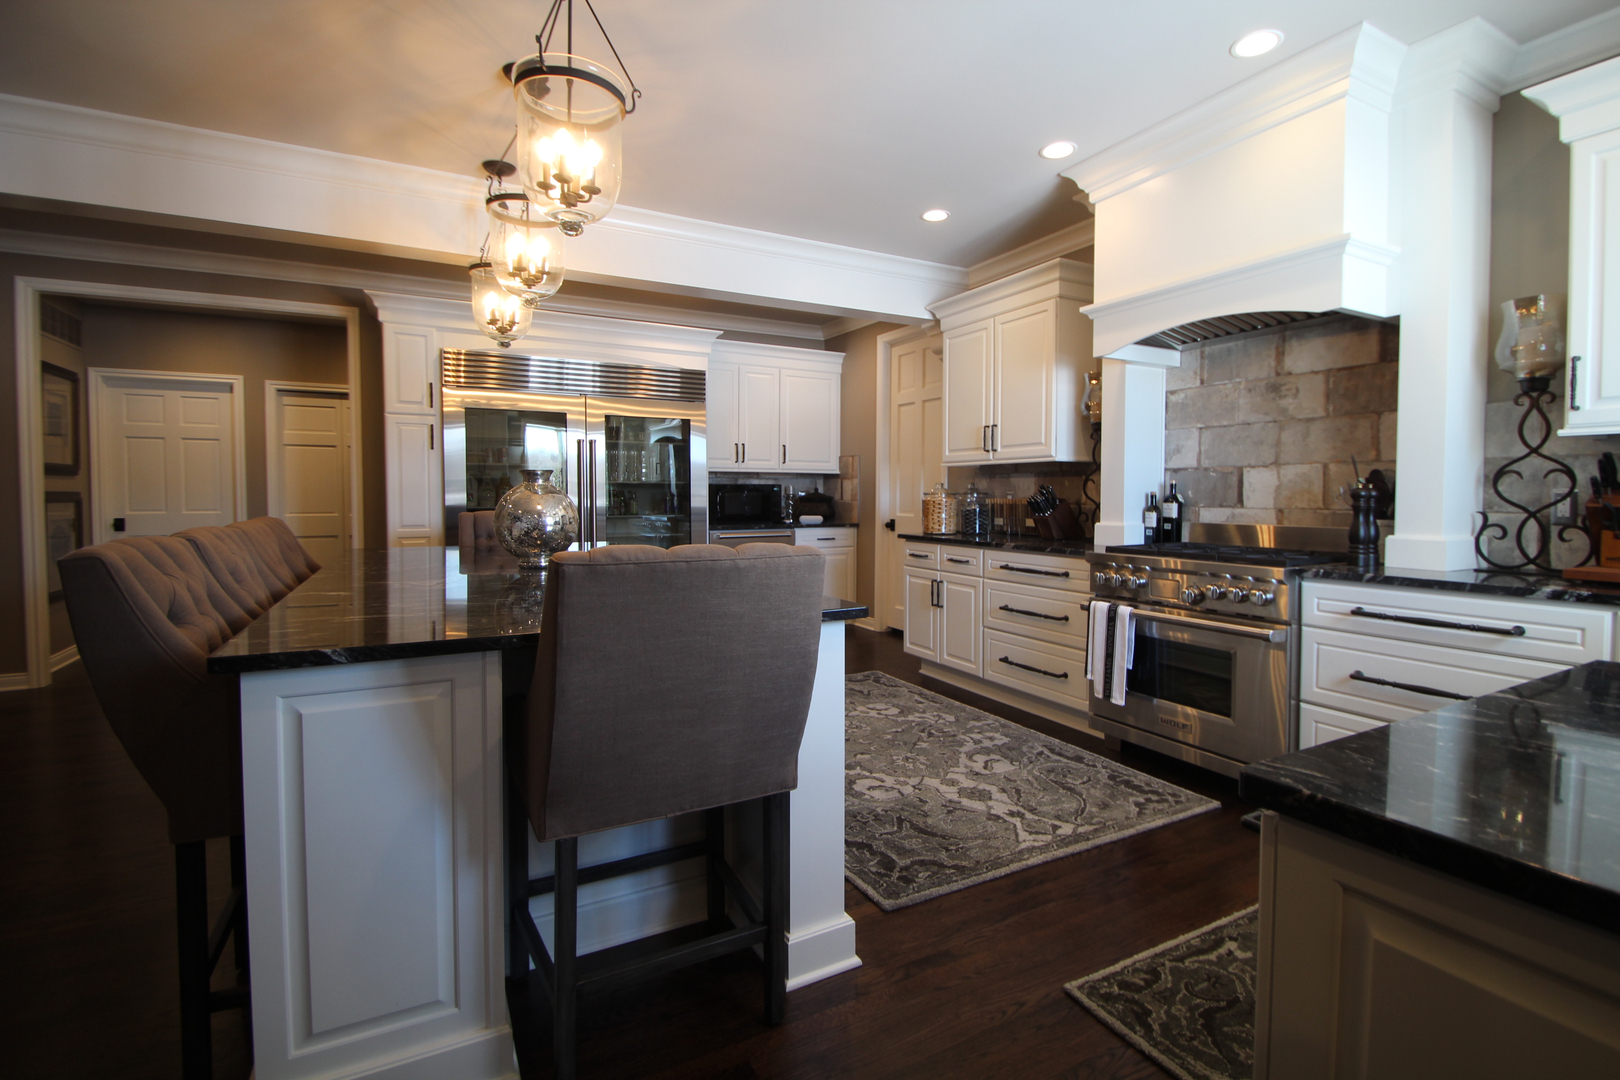 Design Build Home Renovations In Bloomfield Hills And Birmingham And Throughout Oakland County Additions And Custom New Home Construction